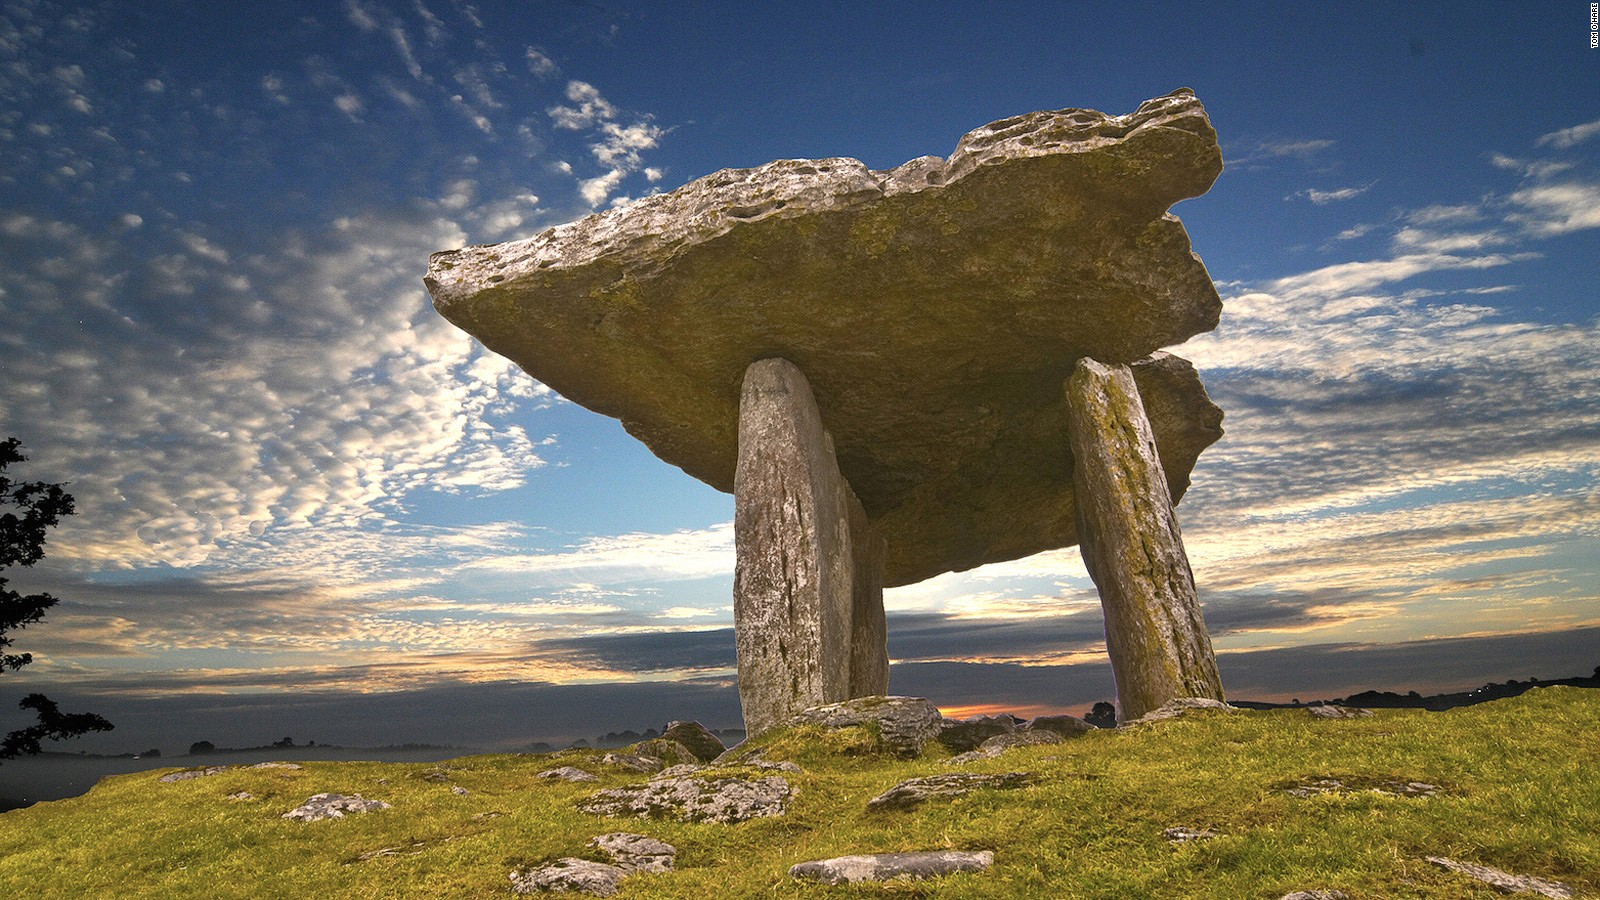 32 beautiful reasons to visit Ireland